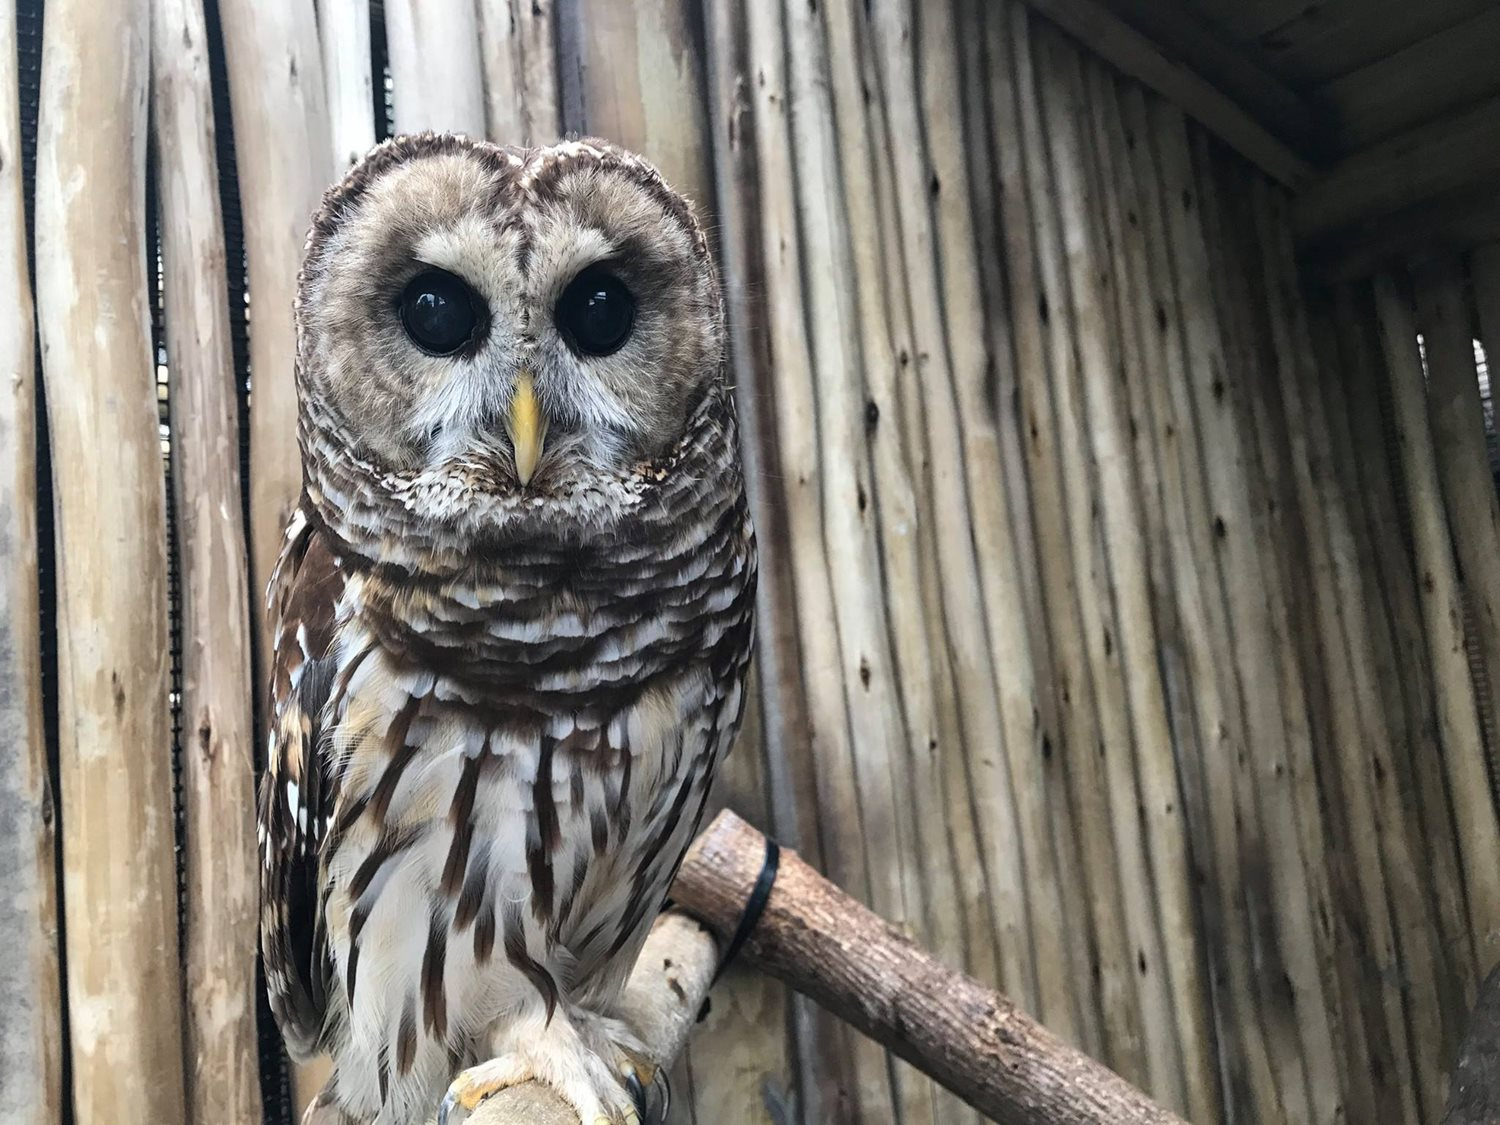 Behind-the-scenes tour of owl aviary